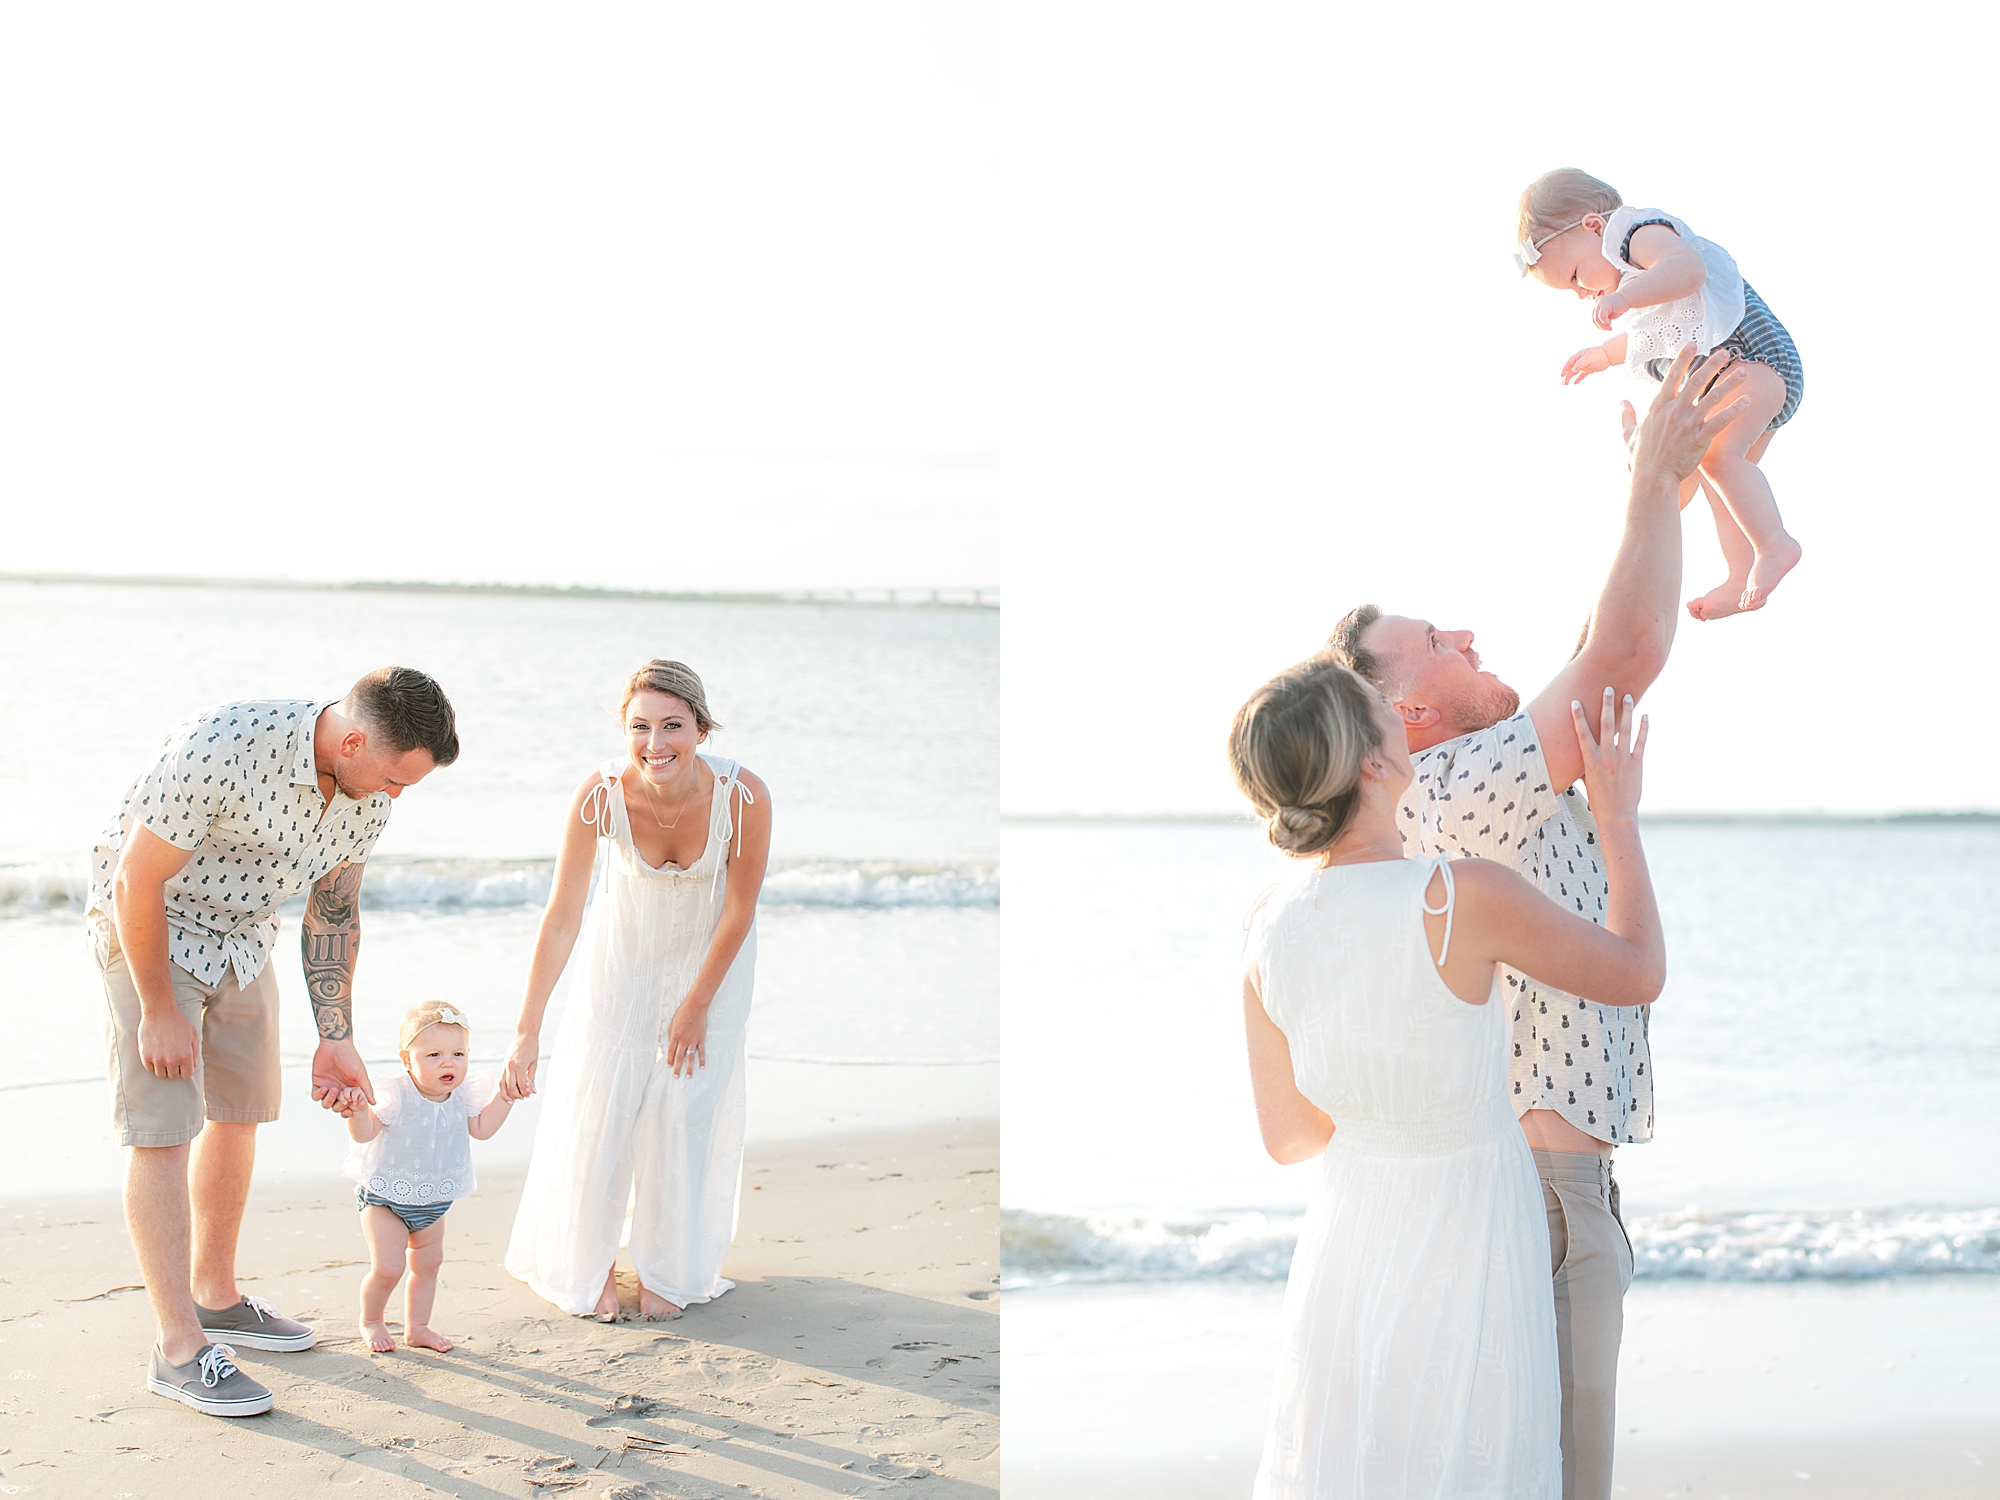 Beach Family Photography OCNJ Ocean City NJ by Magdalena Studios 0004 1